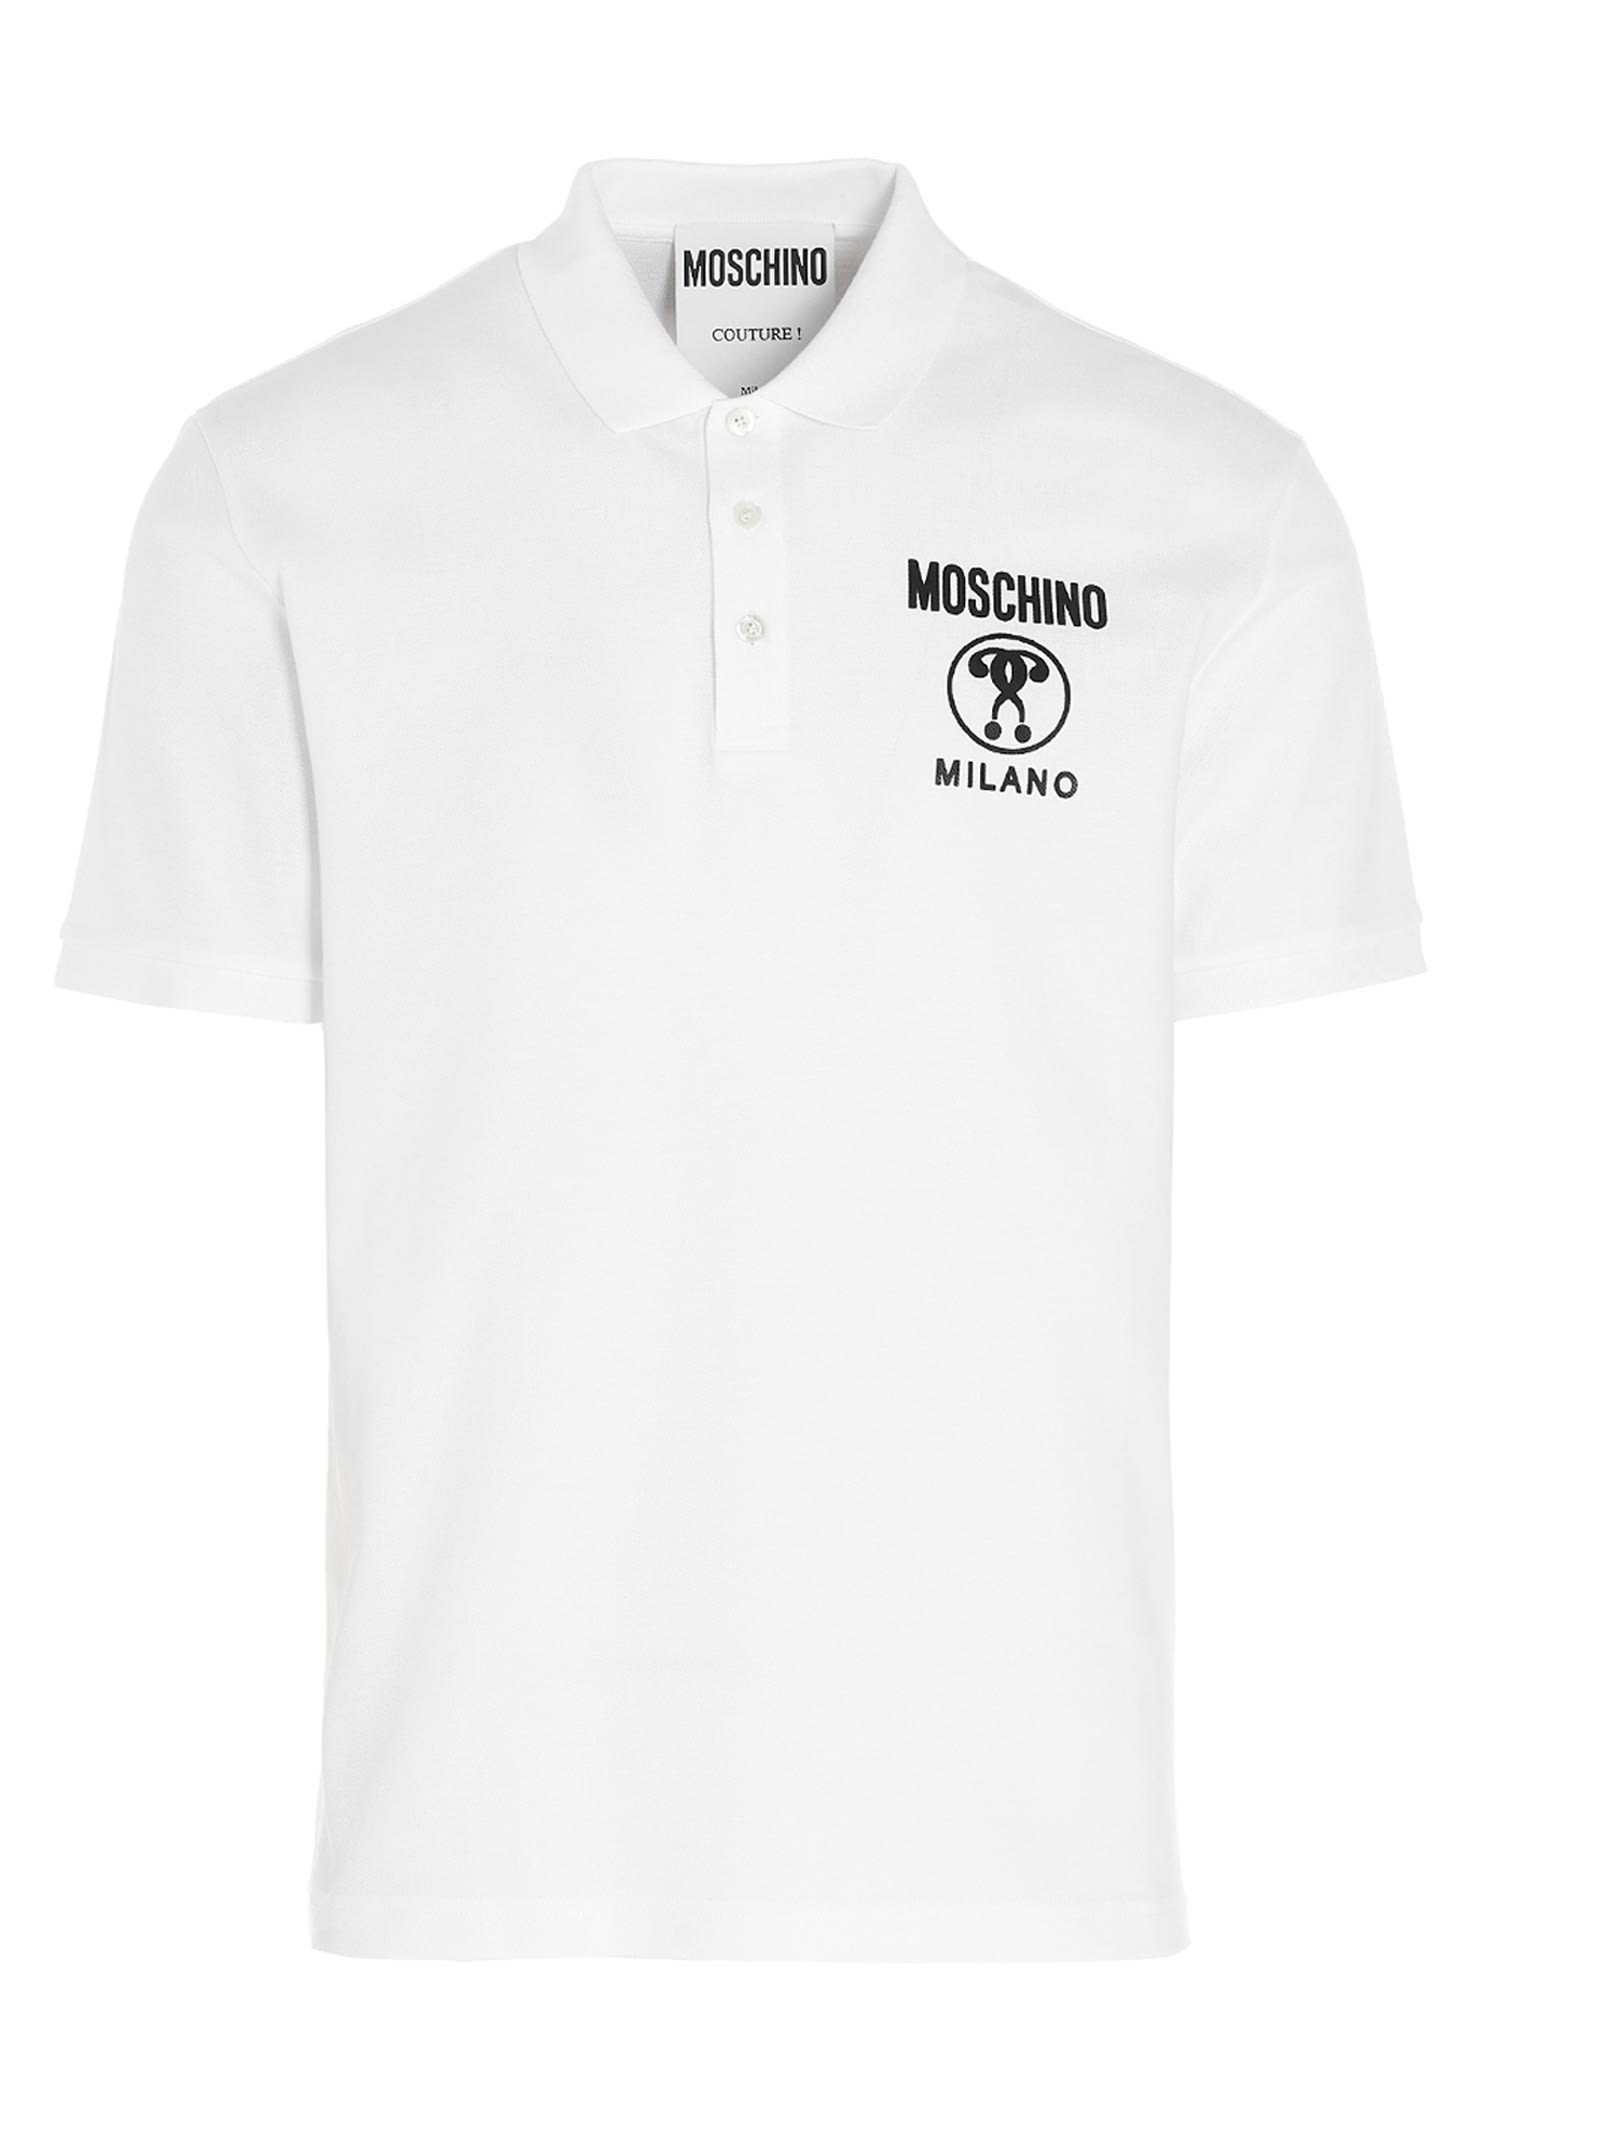 Moschino Cottons DOUBLE QUESTION MARK POLO